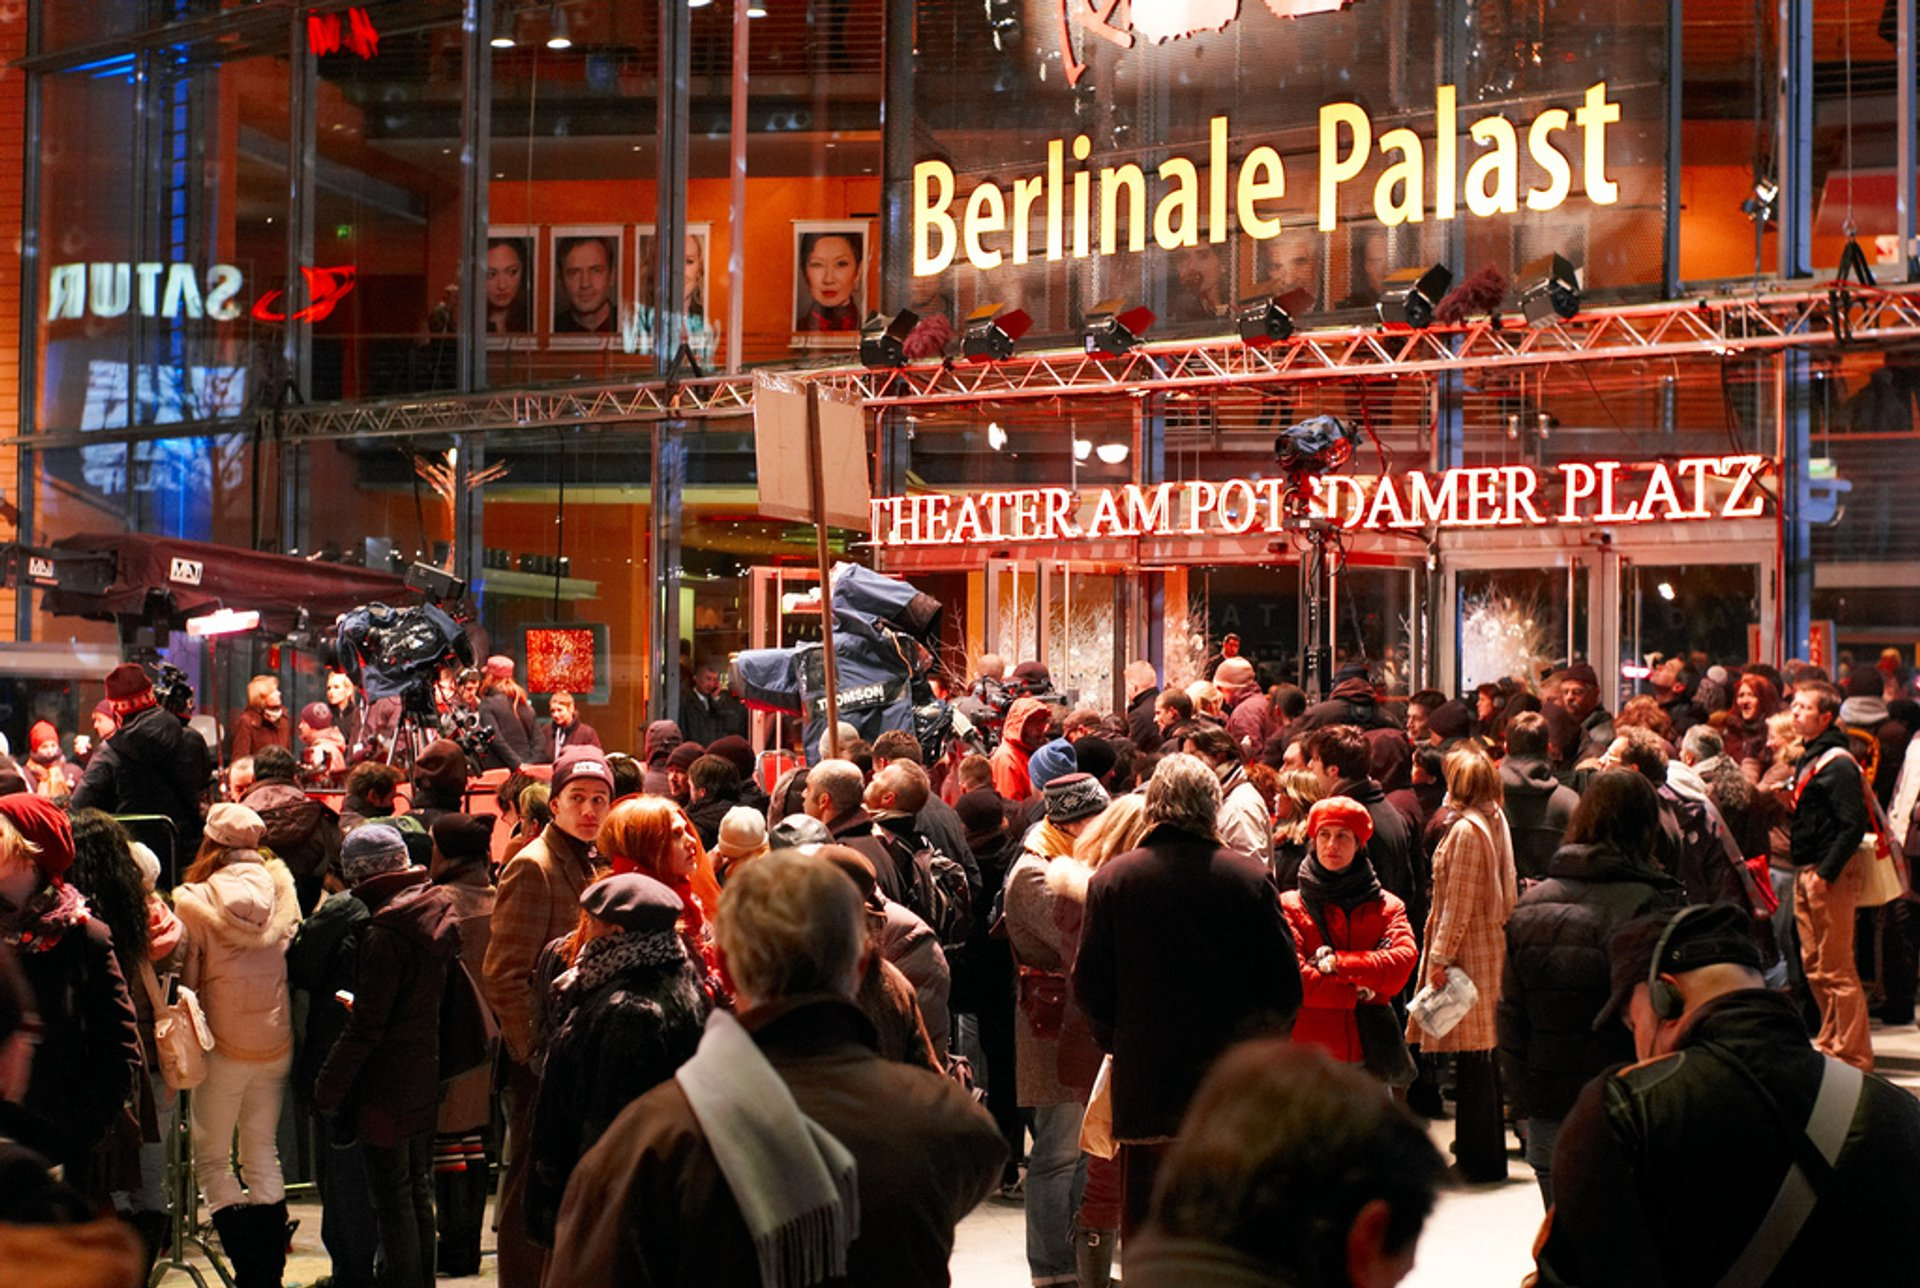 The Berlinale crowd 2020